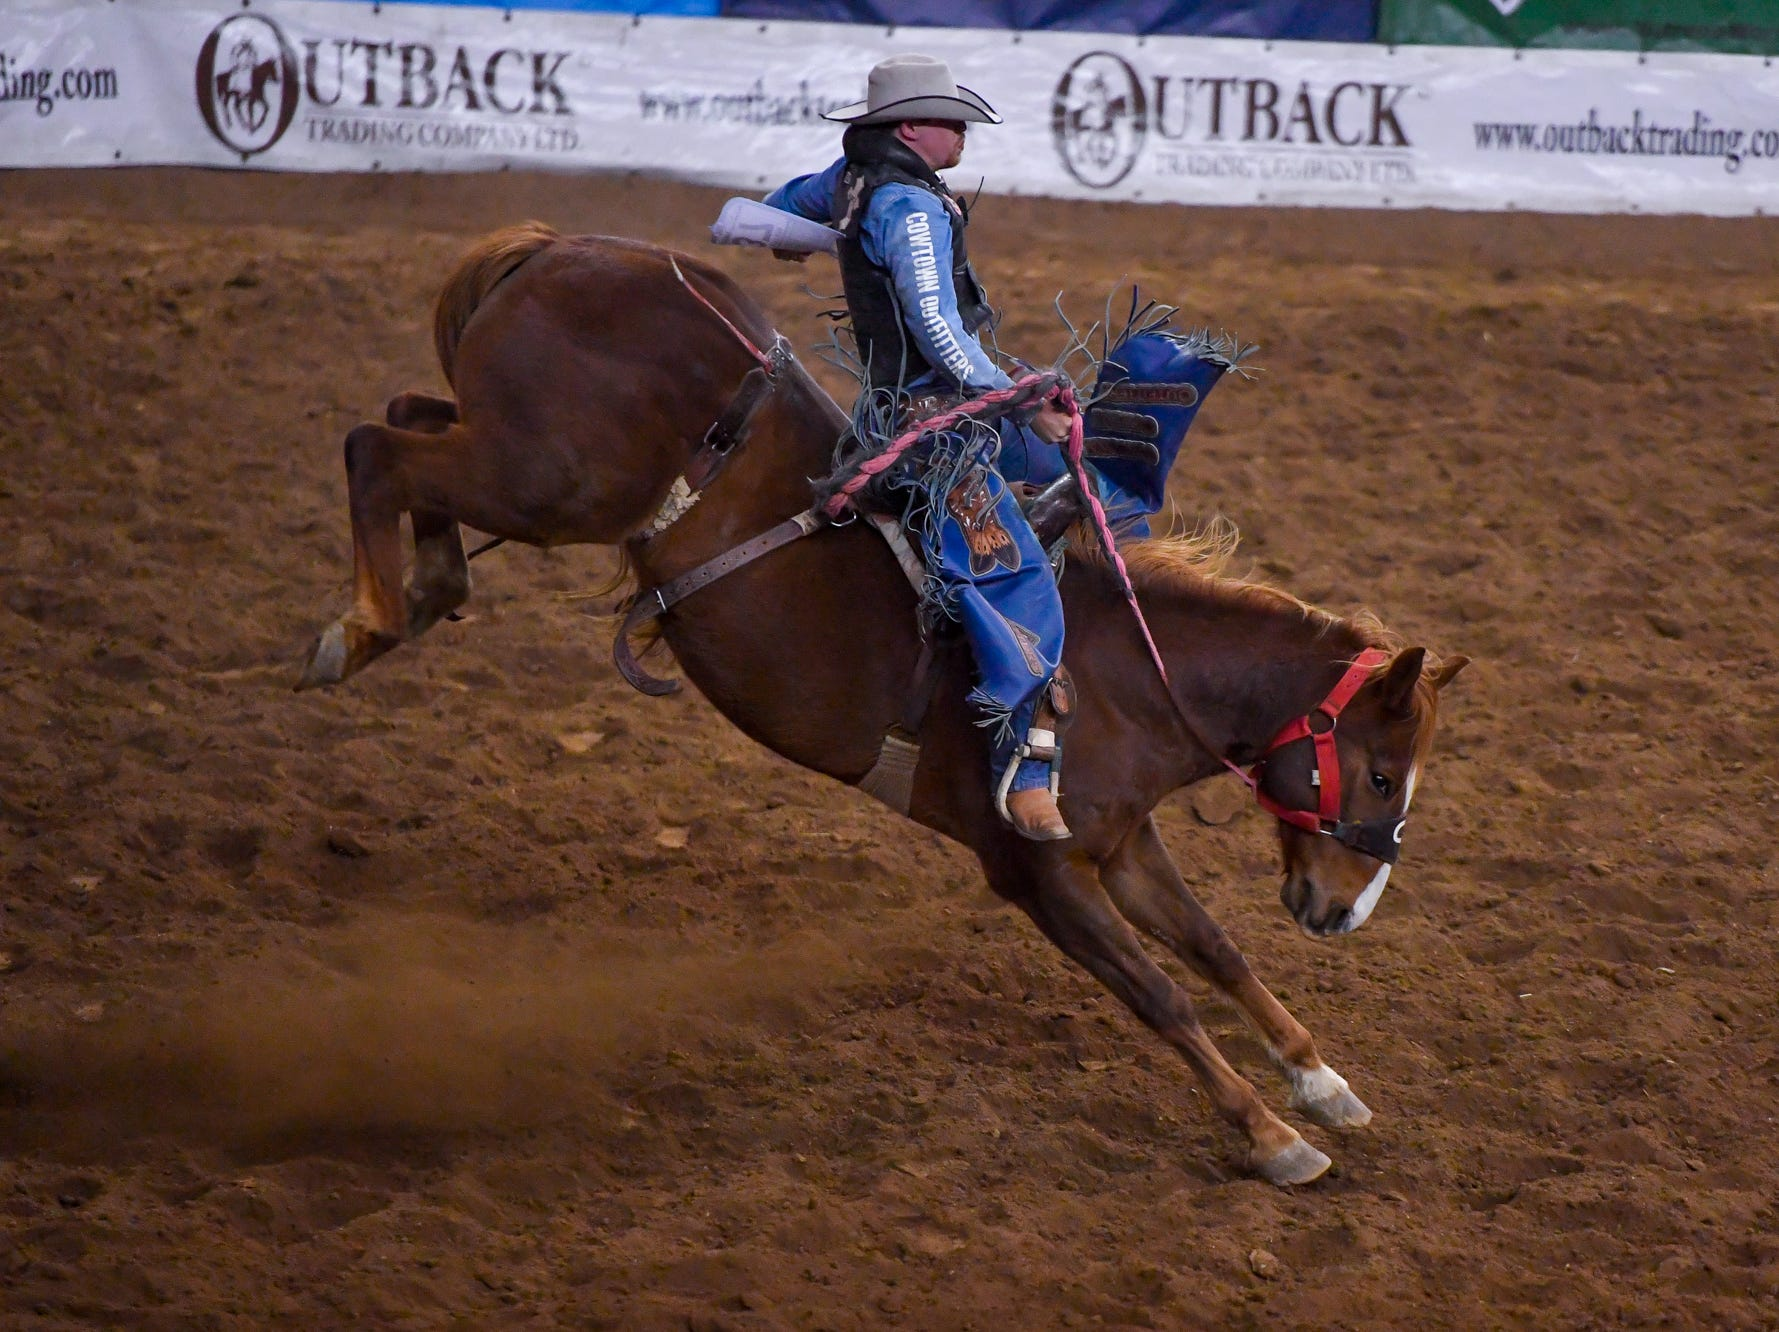 First night of the PRCA First Frontier Circuit Finals Rodeo at the 103rd PA Farm Show, Thursday, January 10, 2019.